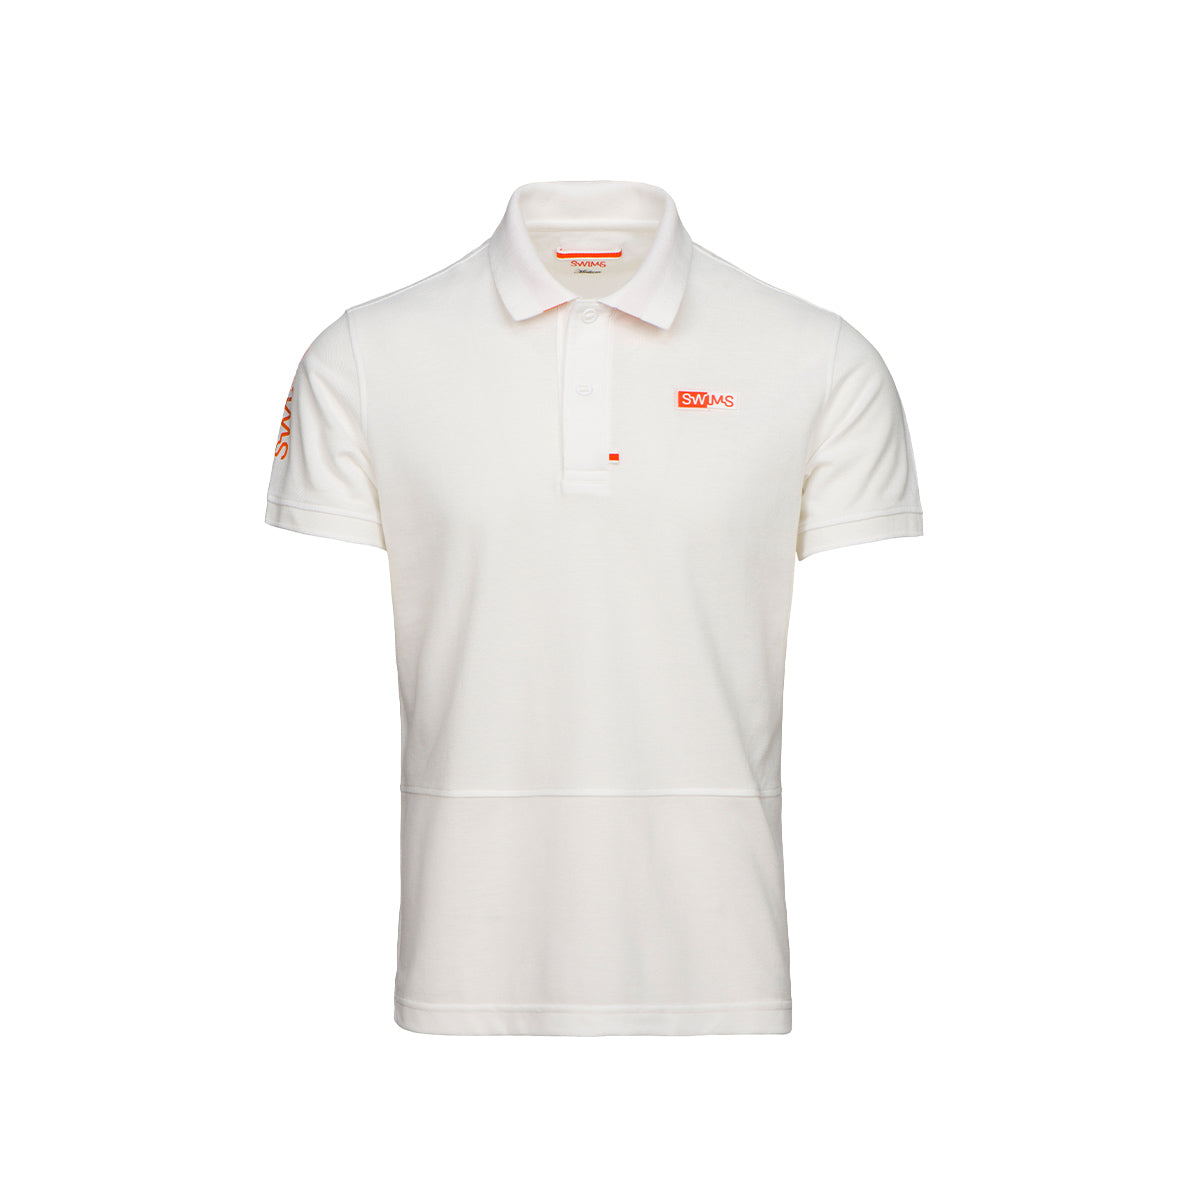 Forno Logo Hybrid Hydrophobic Pique Polo - background::white,variant::white